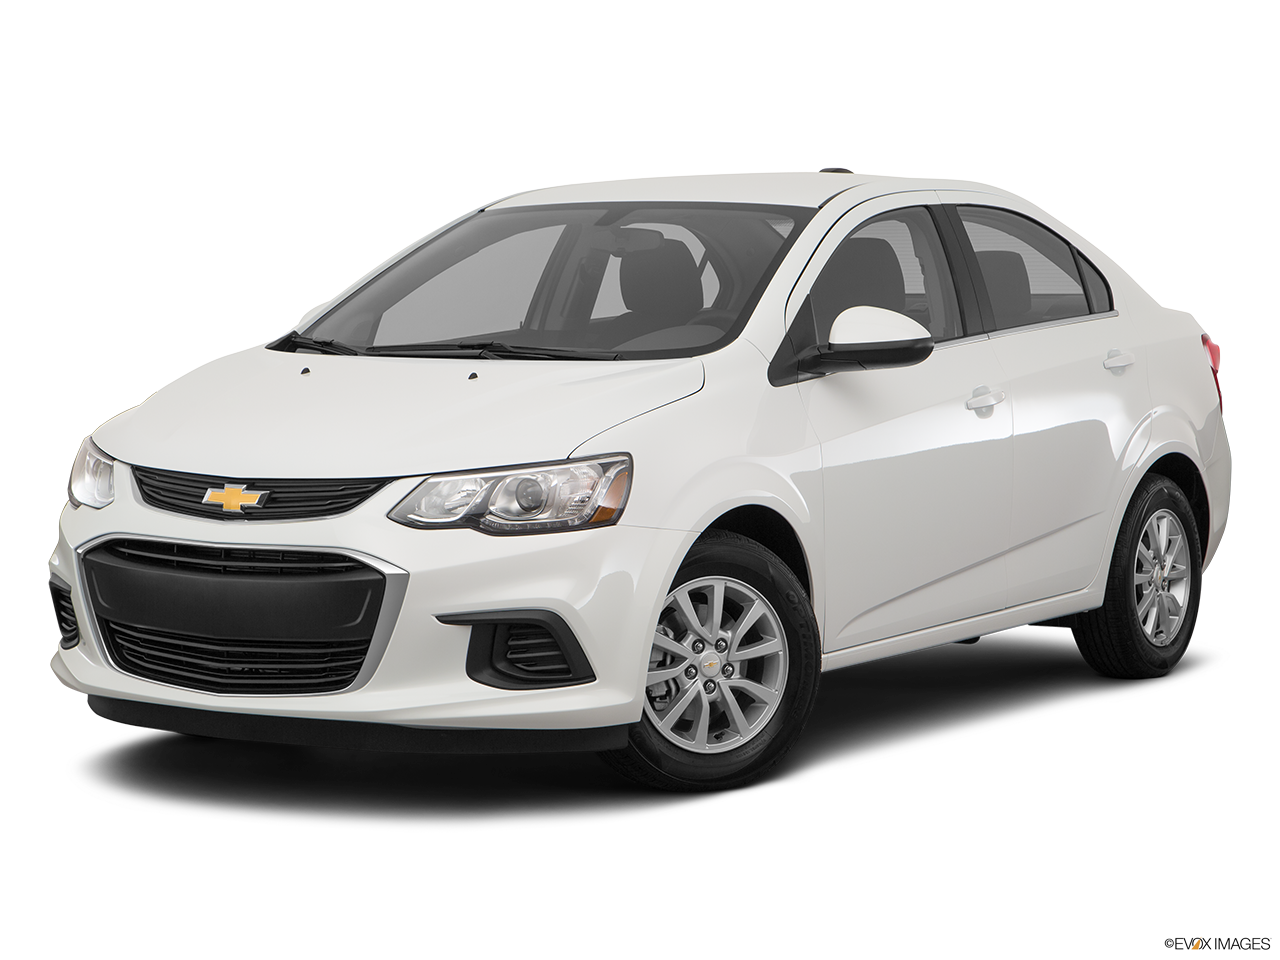 2017 chevrolet sonic riverside moss bros chevrolet for 2017 chevrolet sonic sedan interior